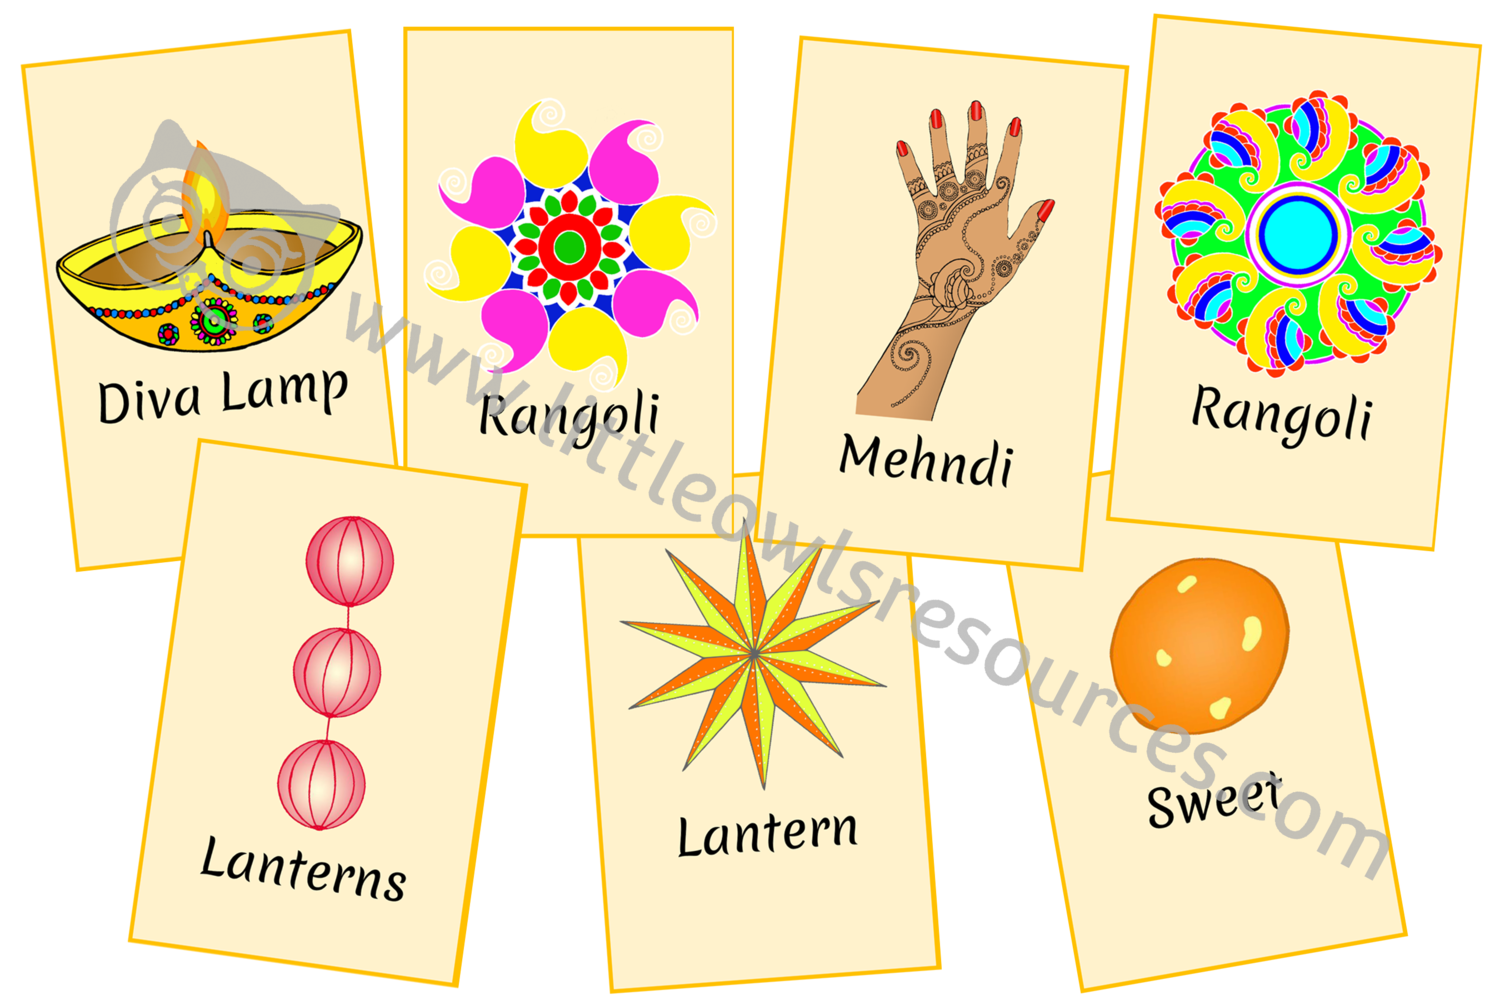 Free Diwali Picture Snap Printable Early Years Ey Eyfs Resource Download Little Owls Resources Diwali Activities Diwali Craft For Children Diwali Pictures [ 1000 x 1500 Pixel ]